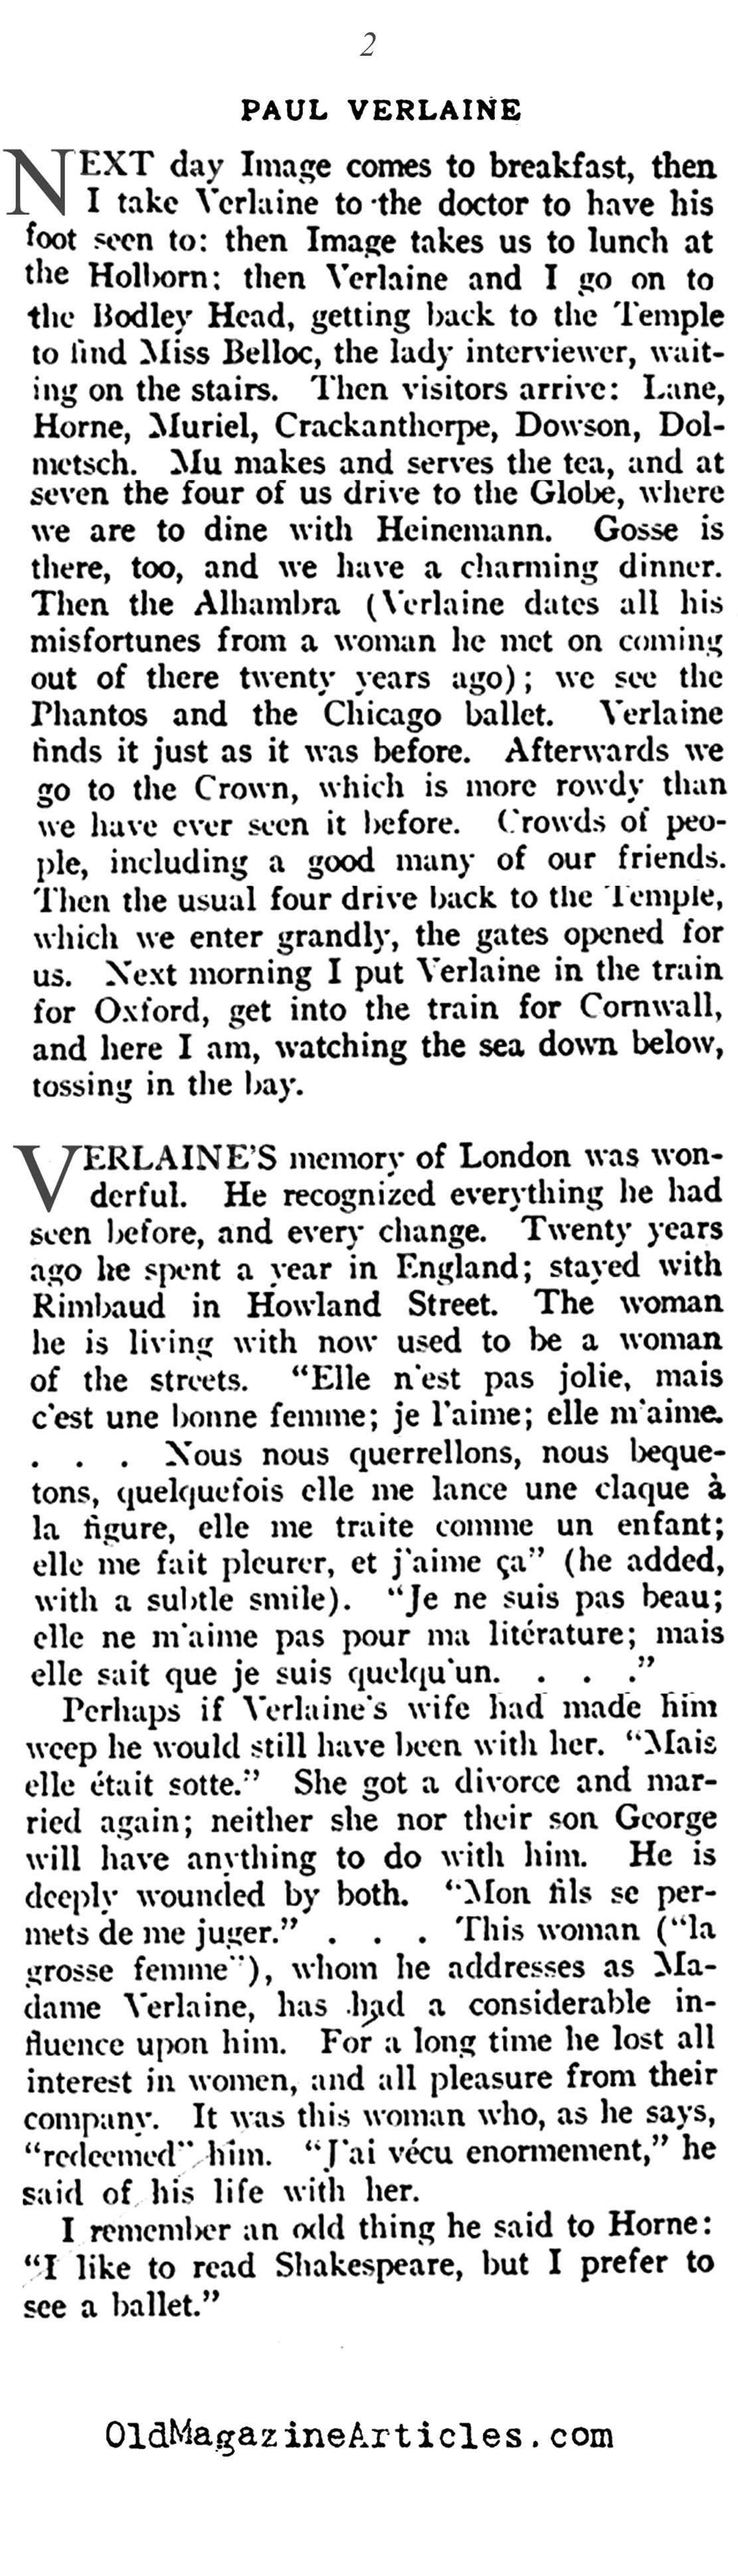 ''Paul Verlaine in London''  (Vanity Fair Magazine, 1916)